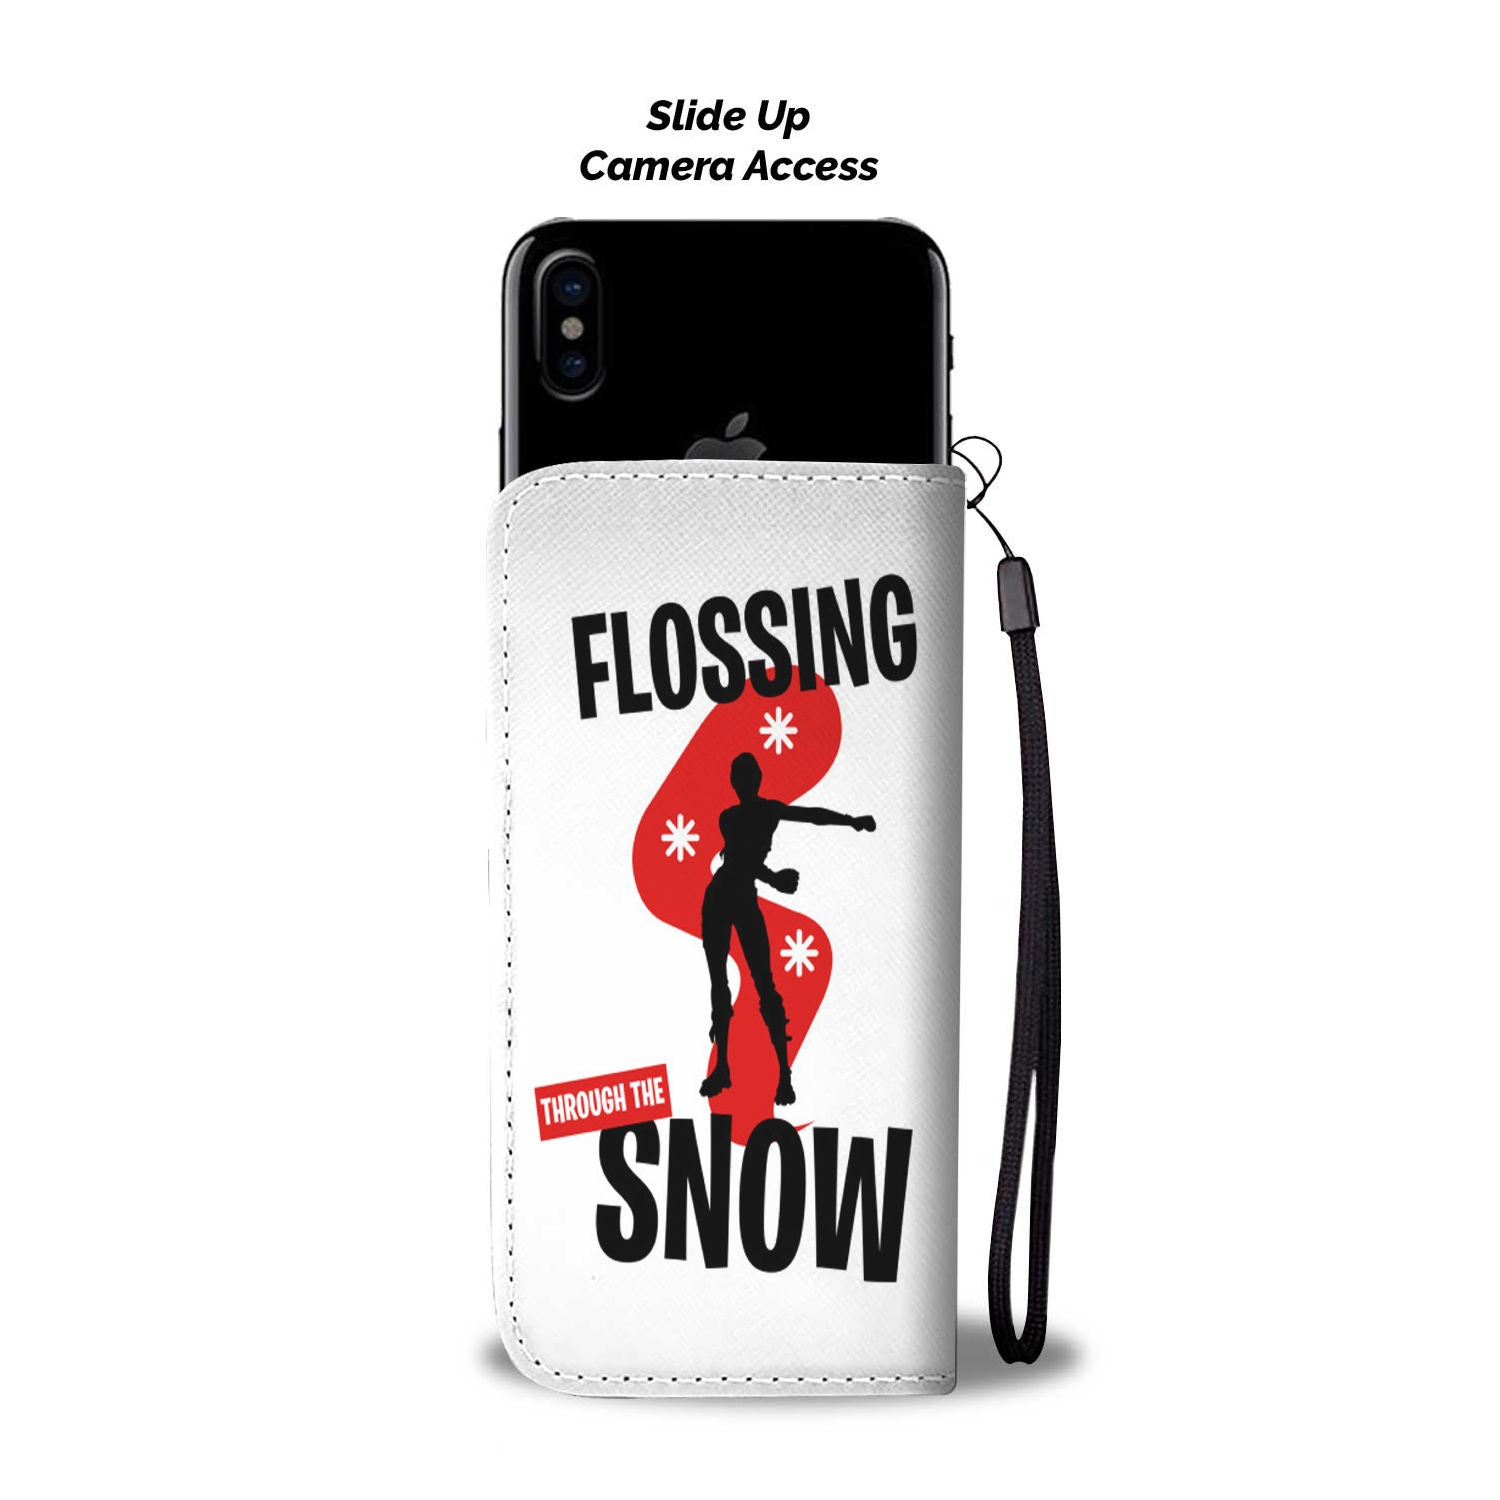 Fortnite Wallet Phone Case Flossing Snow